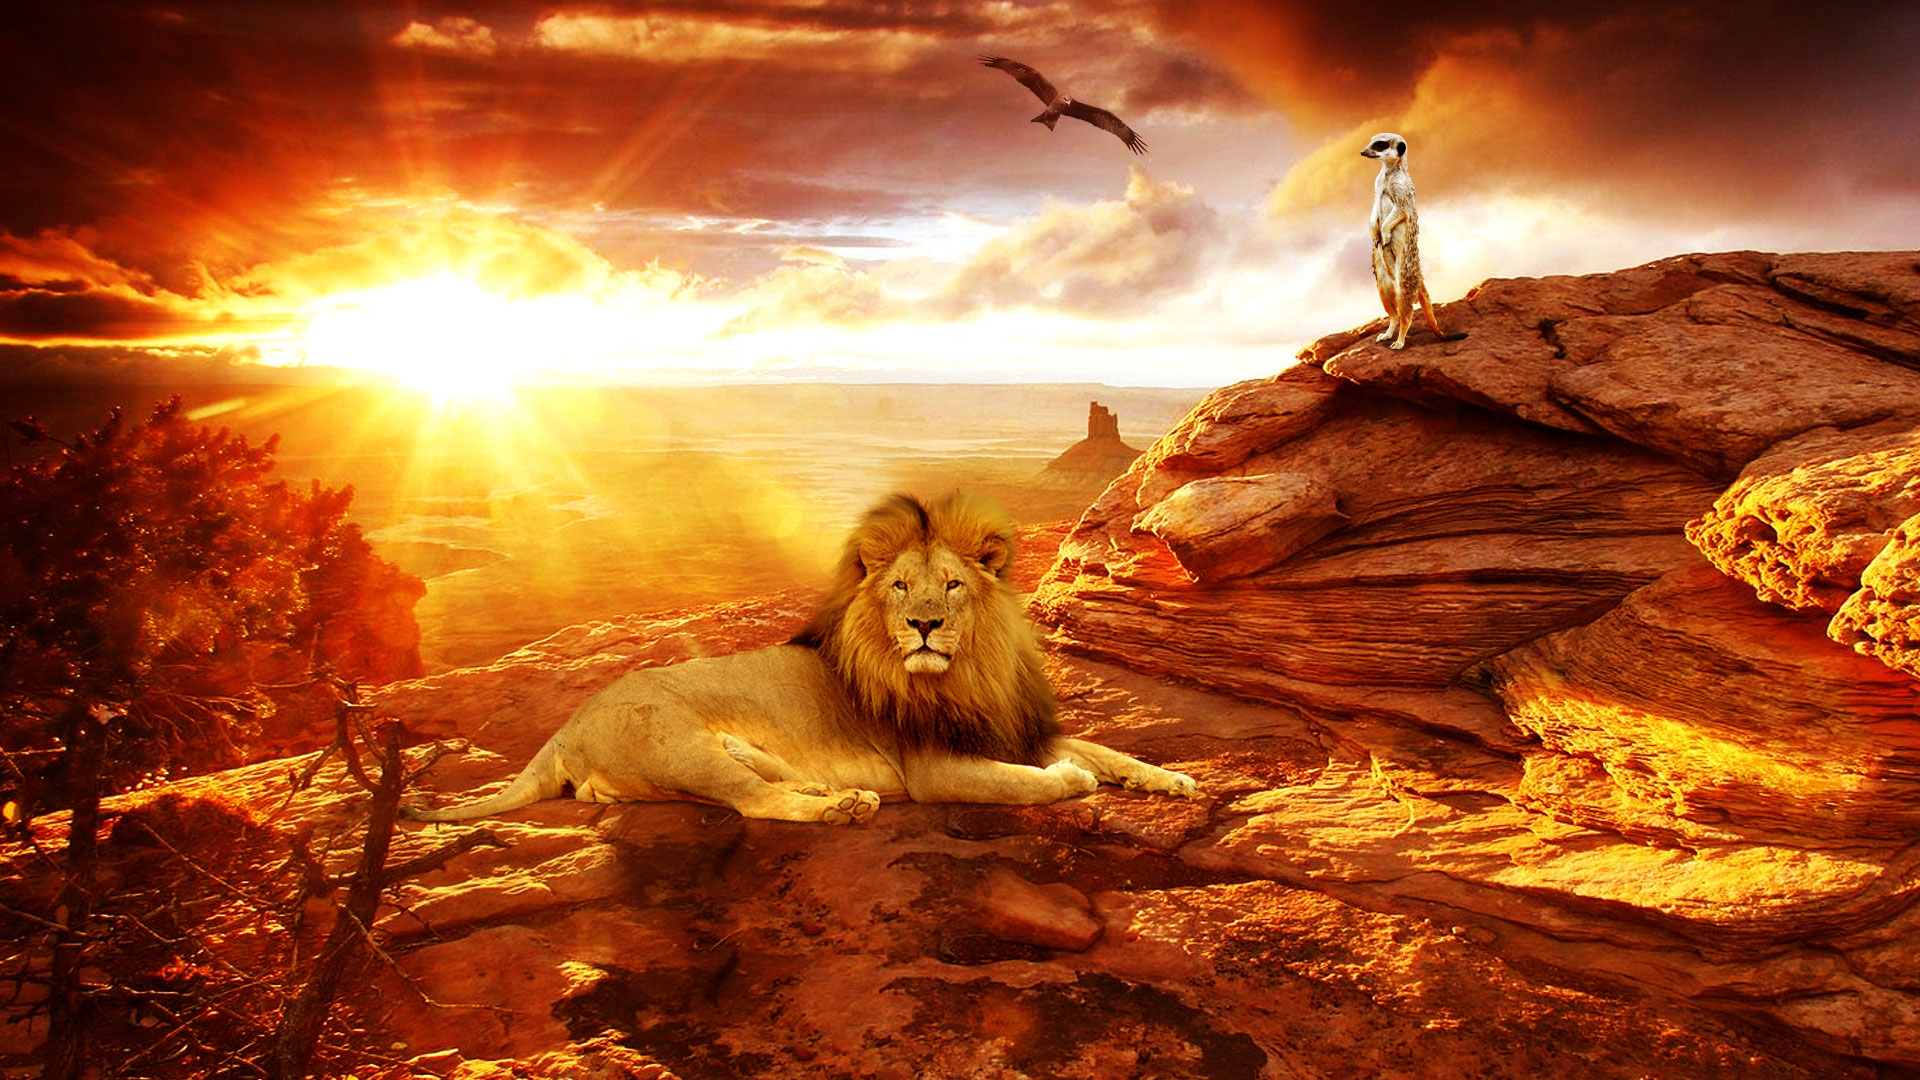 Free Wallpapers Lion in The Desert Africa Wallpaper 1920x1080px